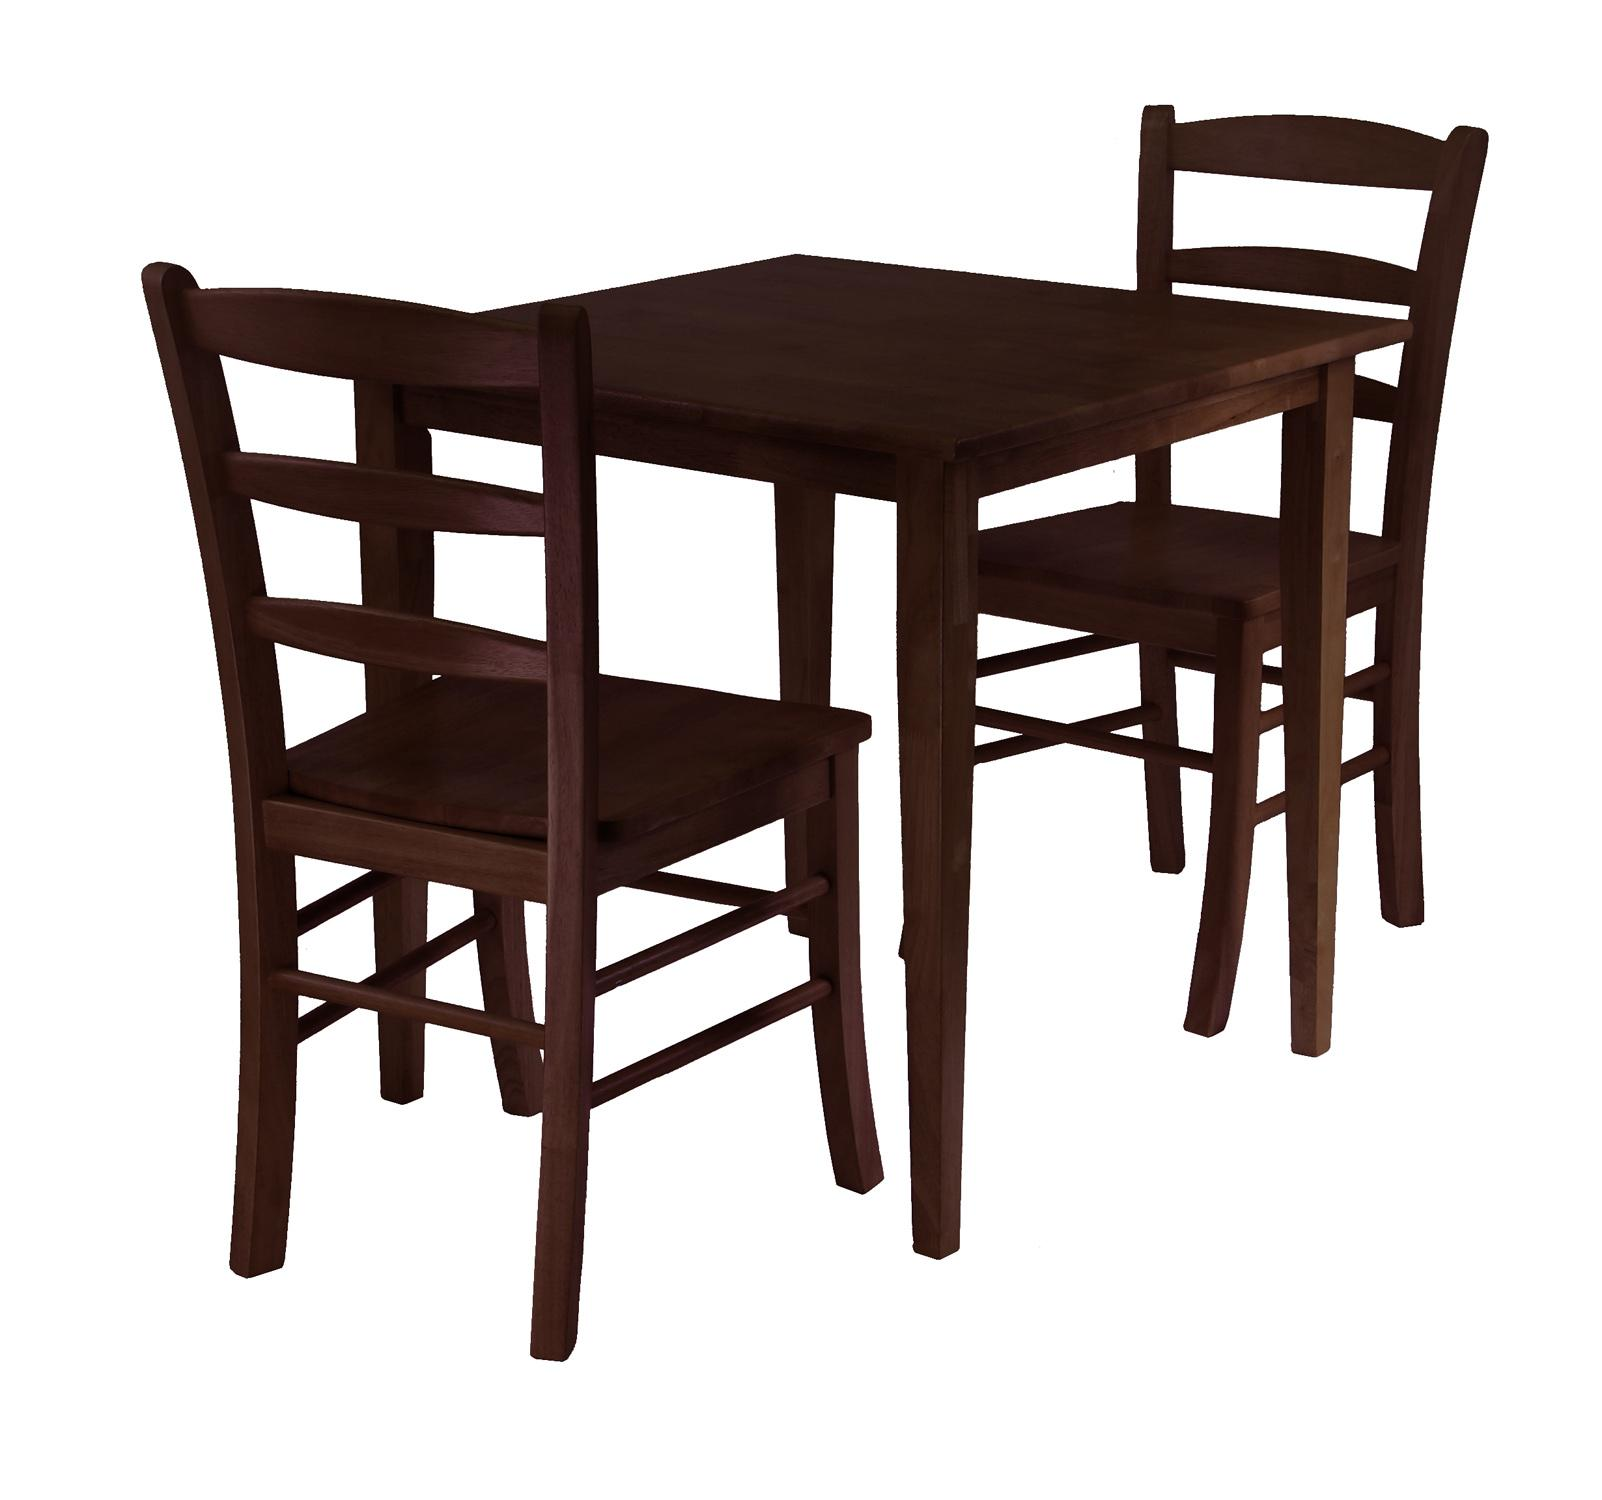 Winsome groveland 3pc square dining table with 2 chairs by for Small wood dining table and chairs